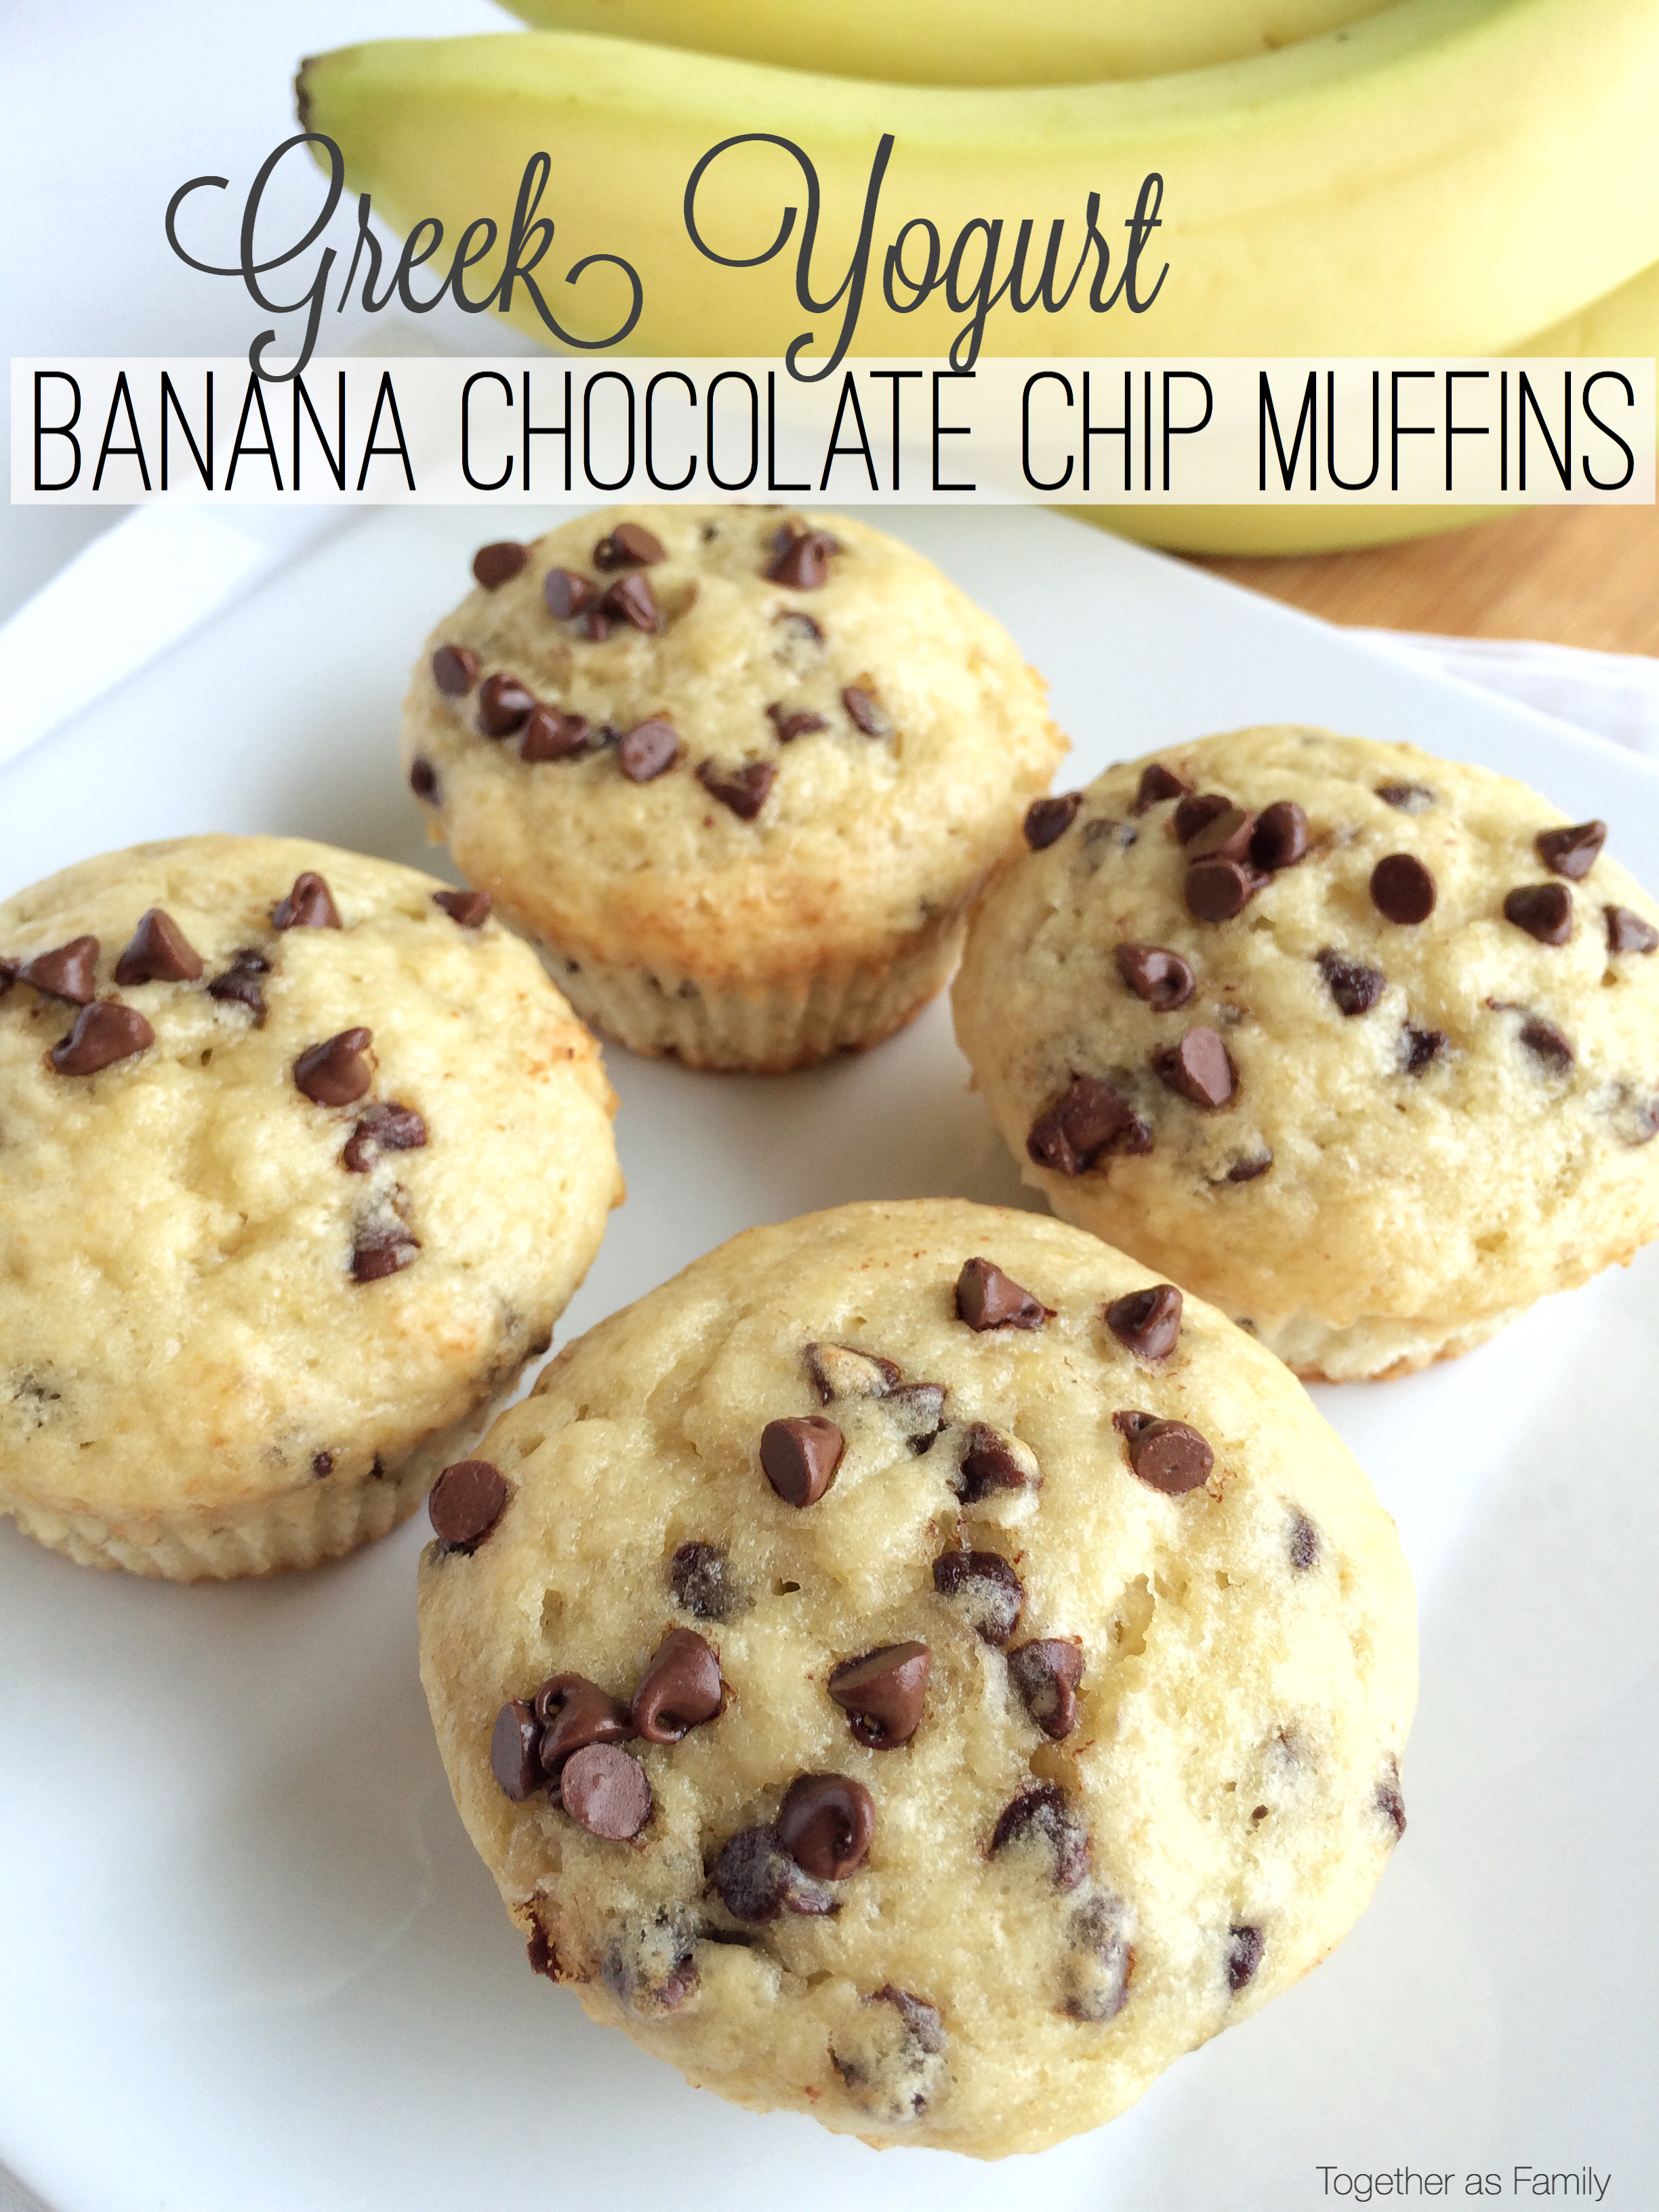 Greek Yogurt Banana Chocolate Chip Muffins - Together as Family